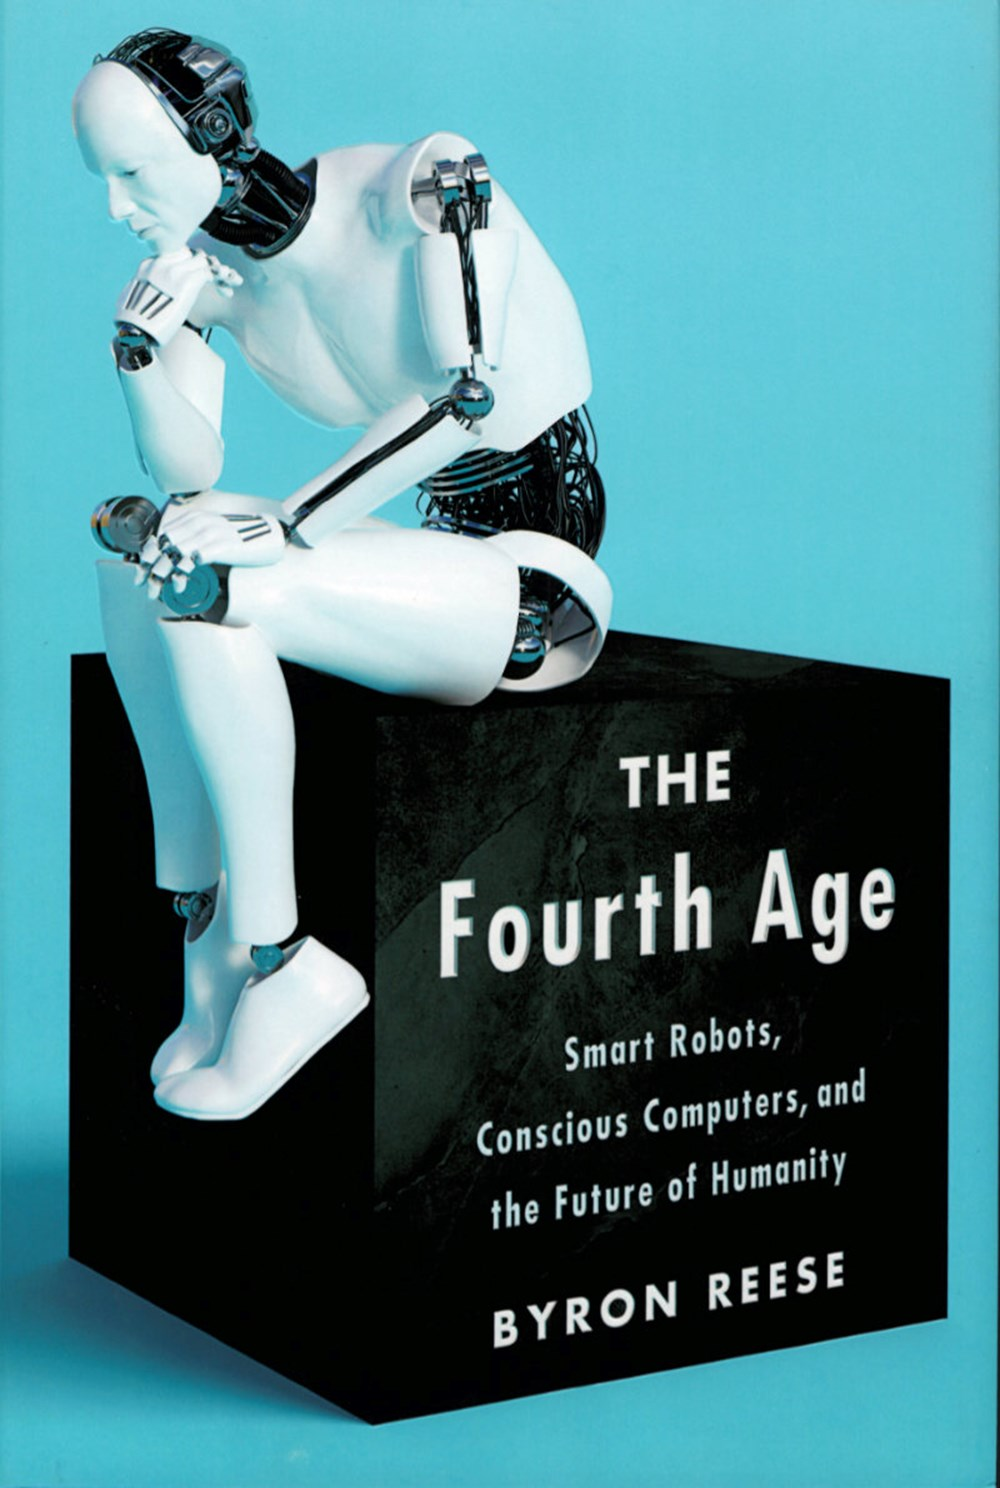 Fourth Age Smart Robots, Conscious Computers, and the Future of Humanity